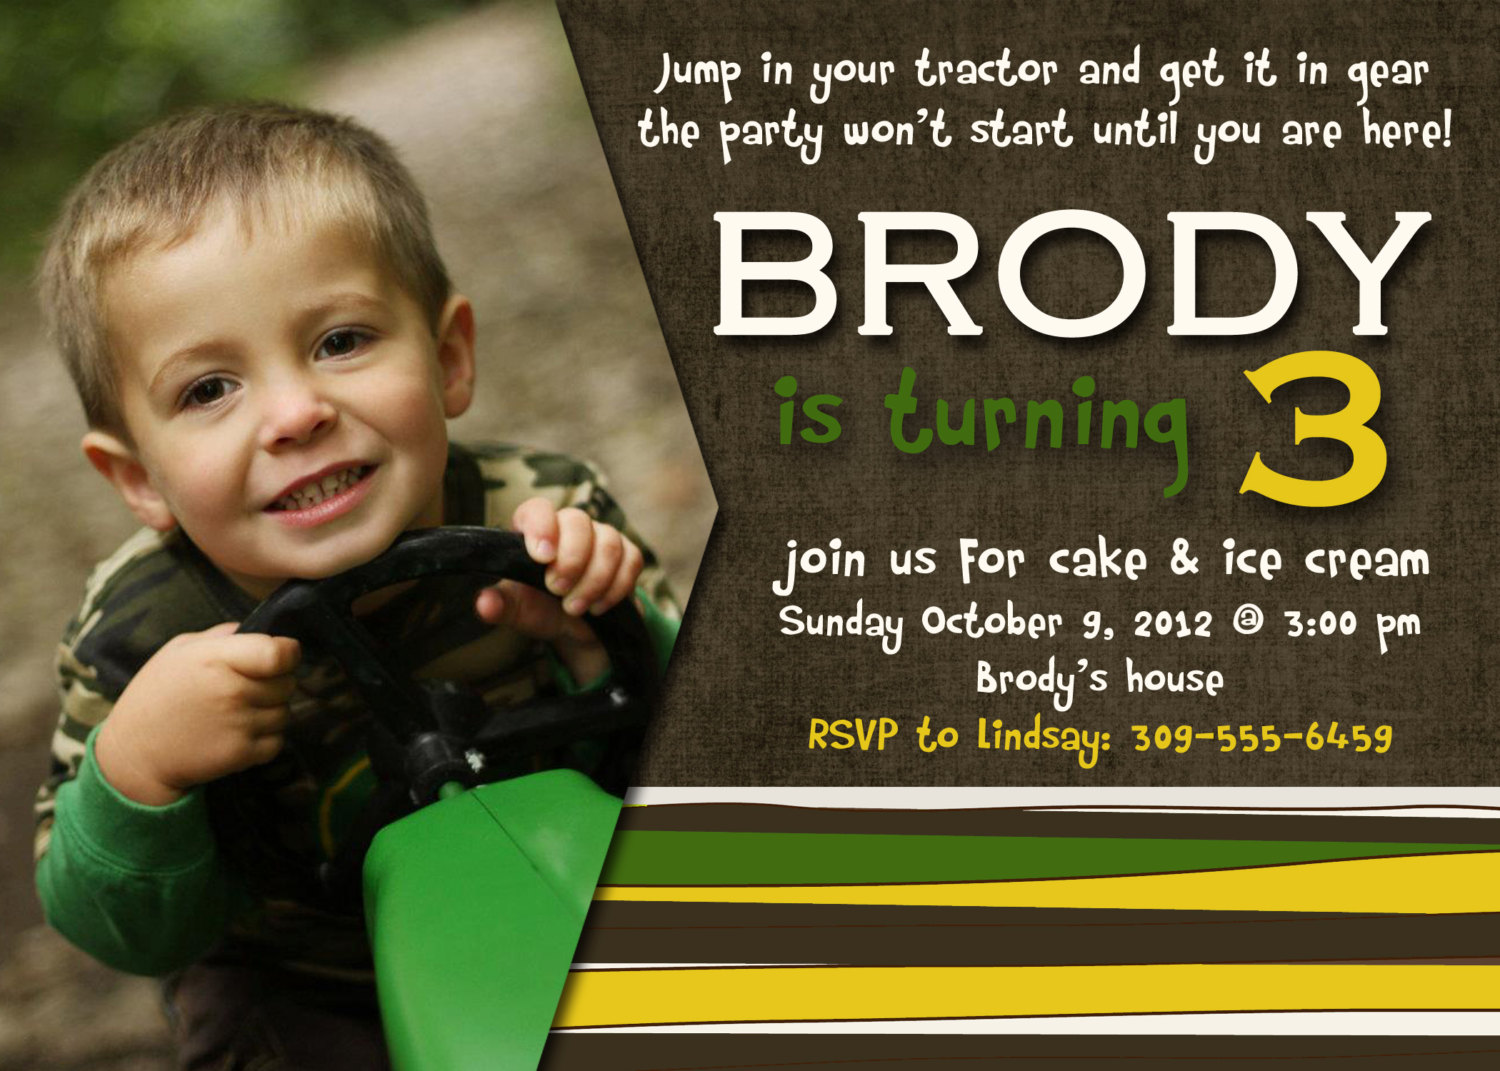 3rd Birthday Party Invitation Wording Boy Simple Samples With Inspirational Photo Hd White Beautiful Saying 0